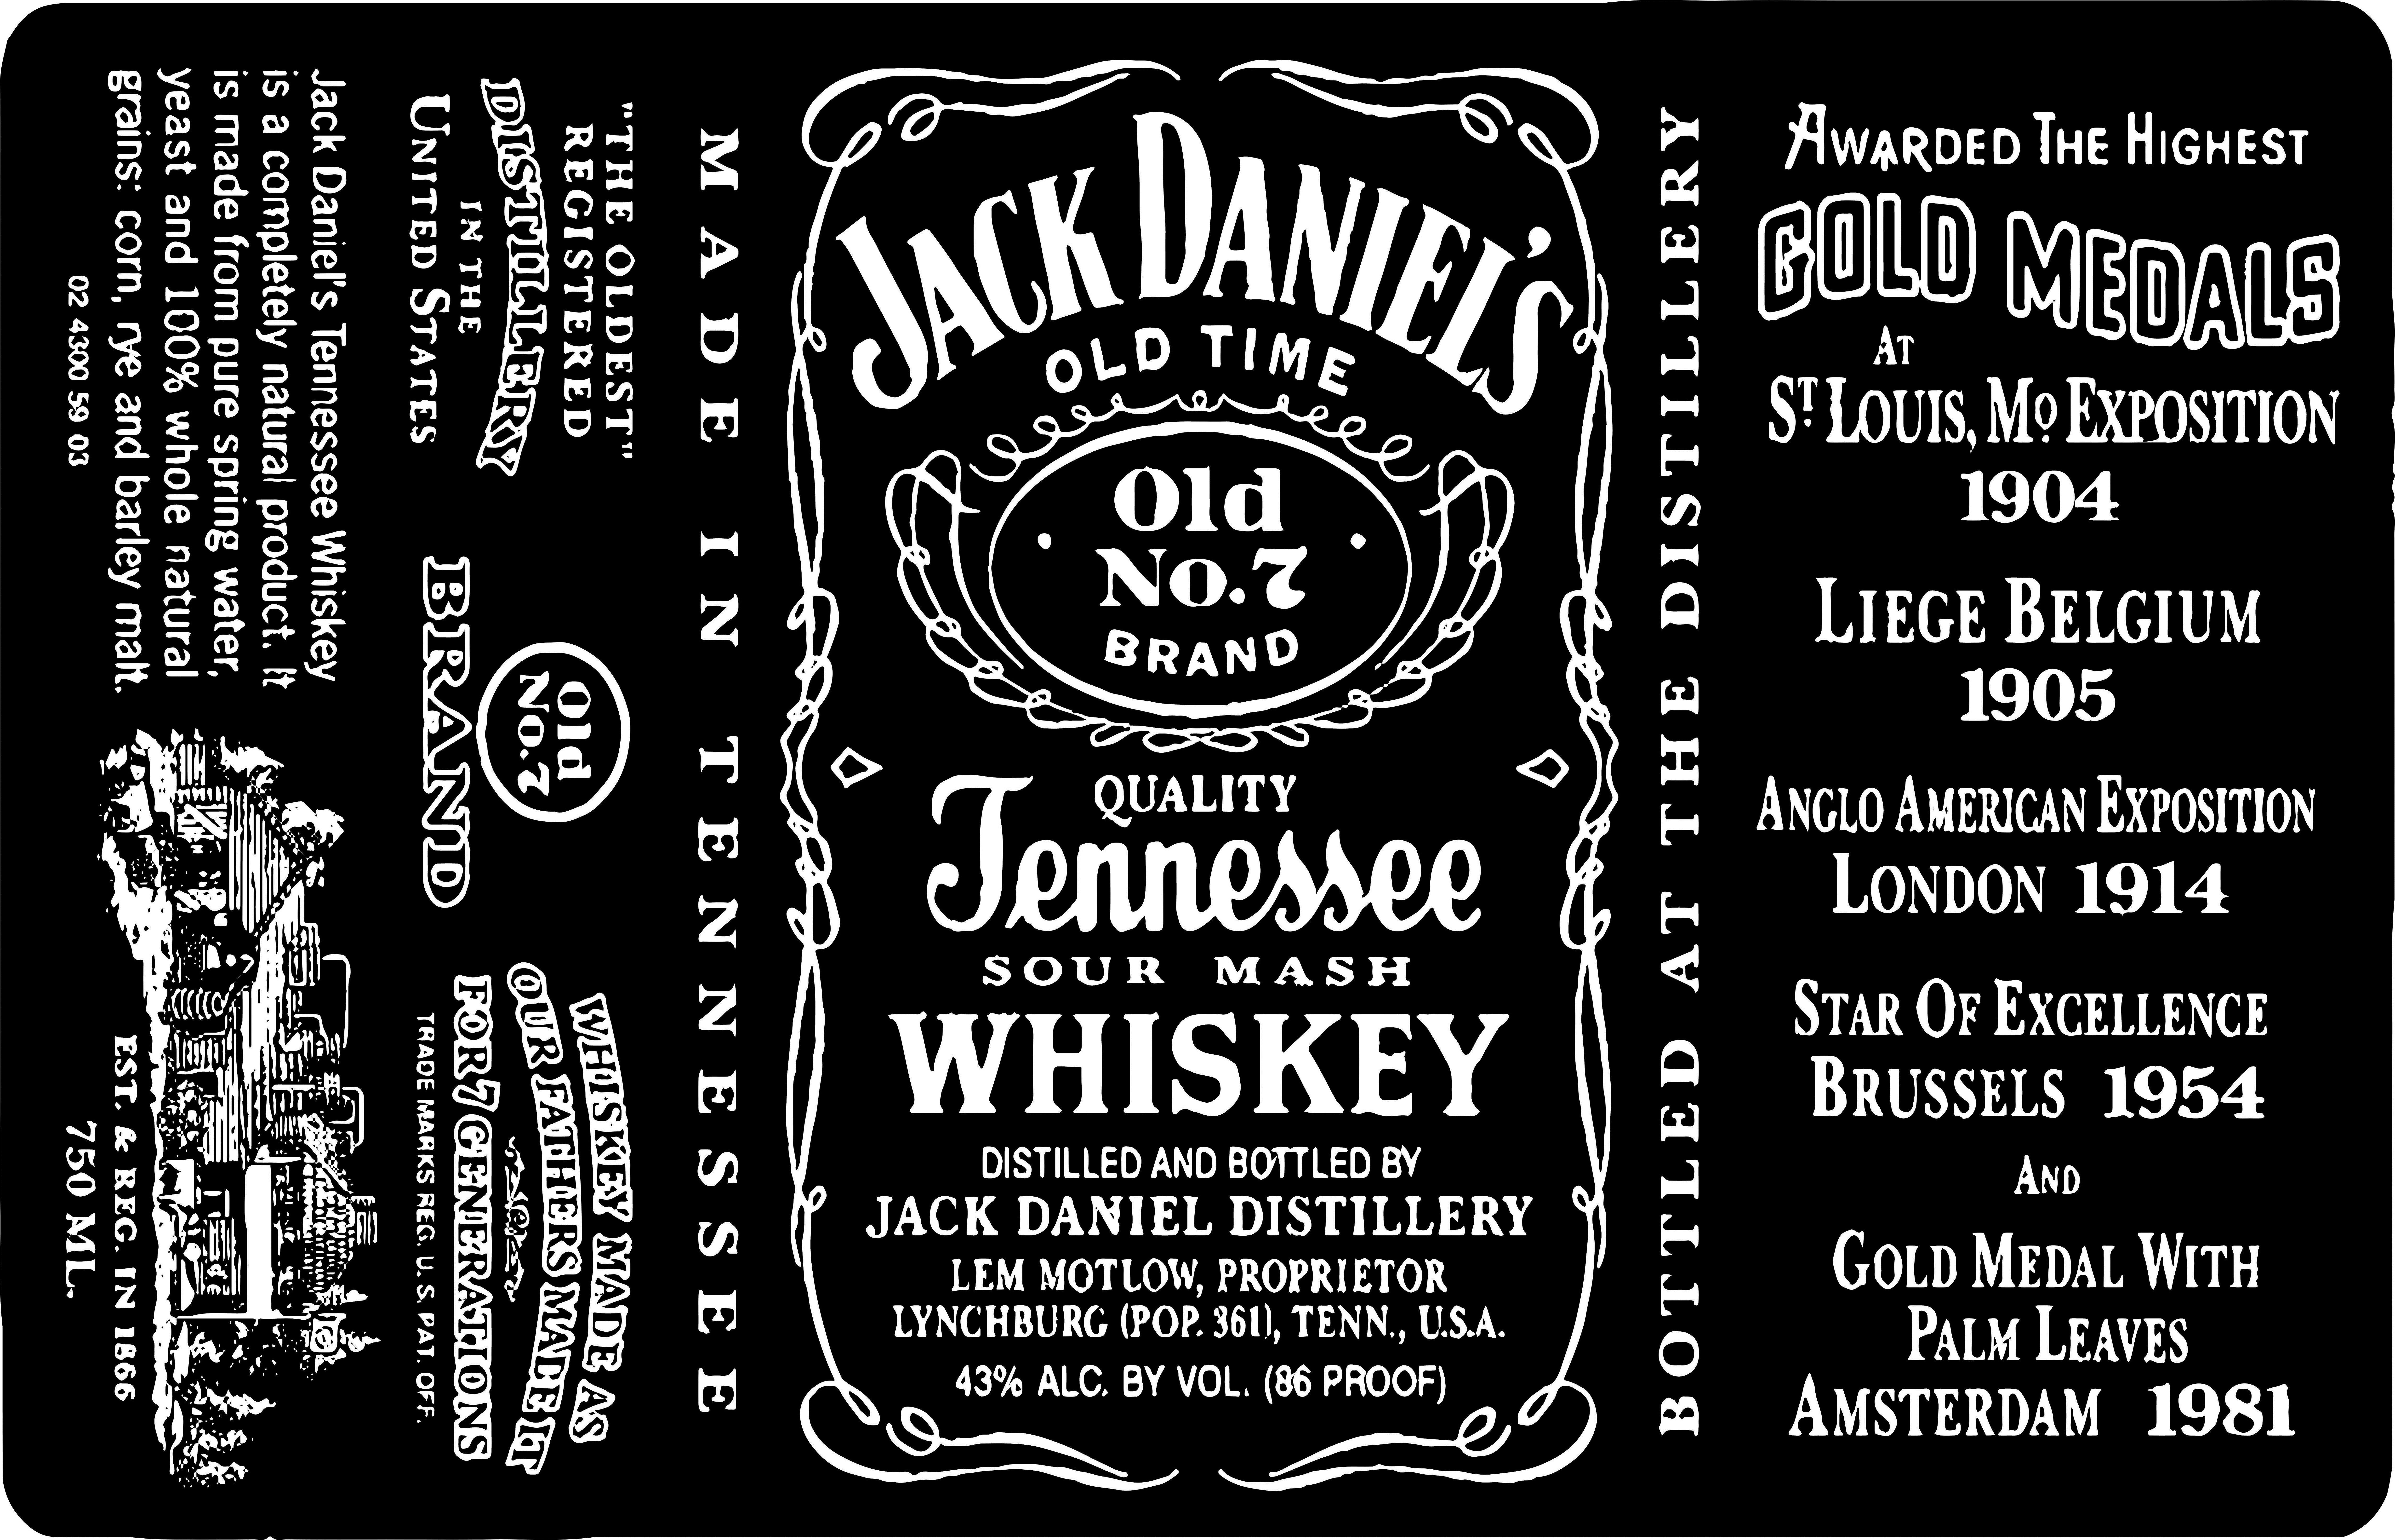 Jack Daniels 8k Ultra HD Wallpaper And Background Image